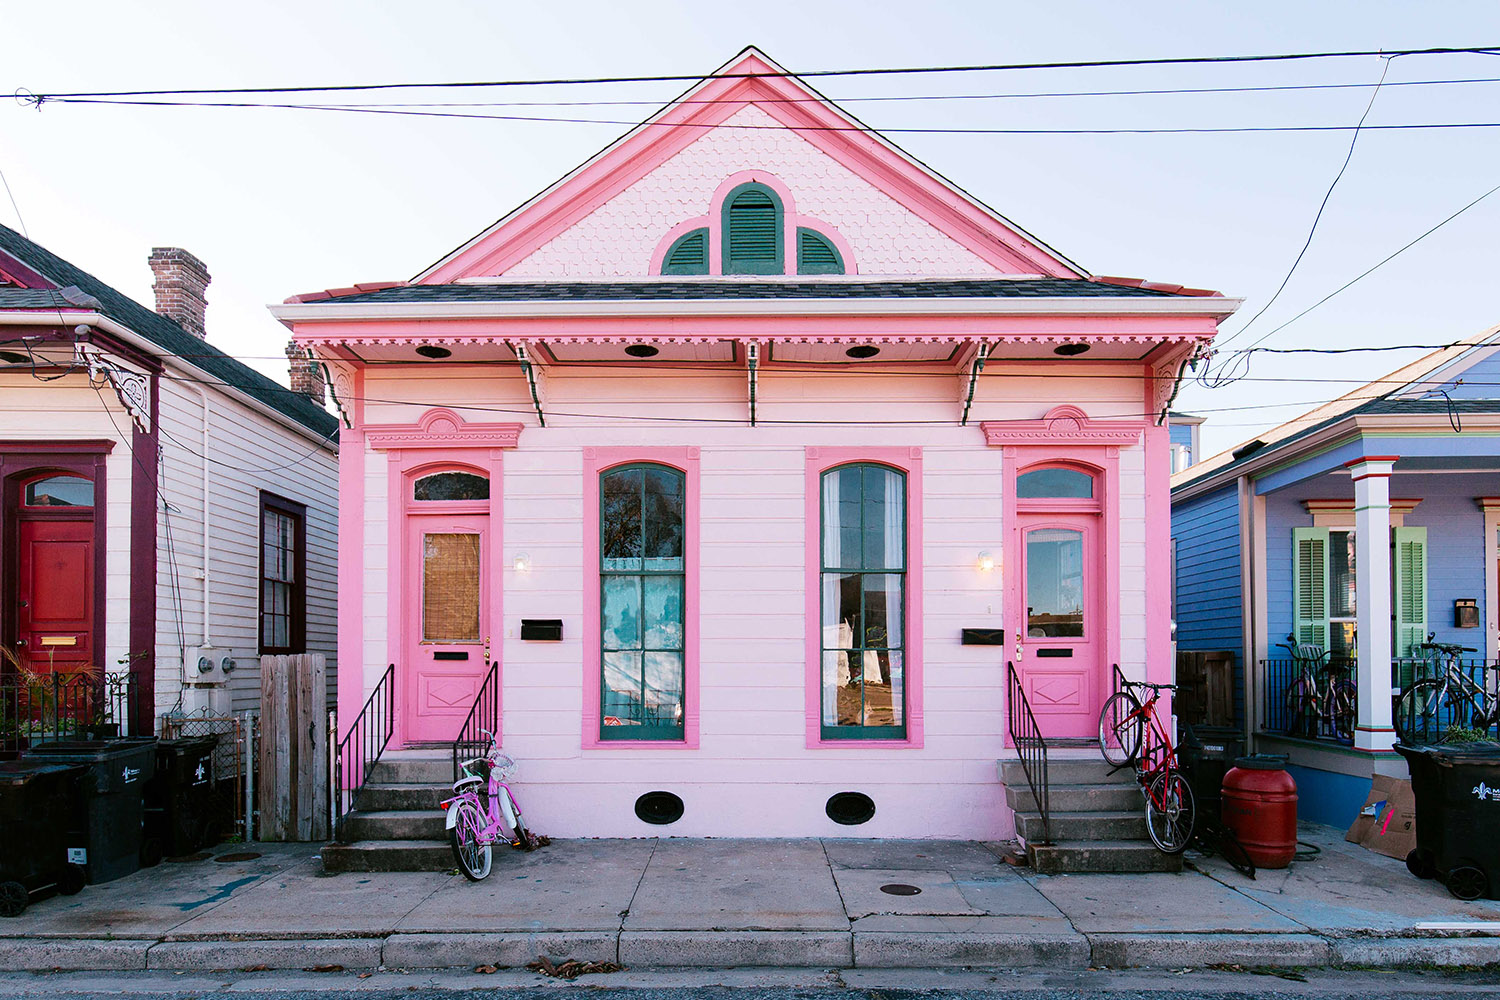 pink house in new orleans - Houses Pic